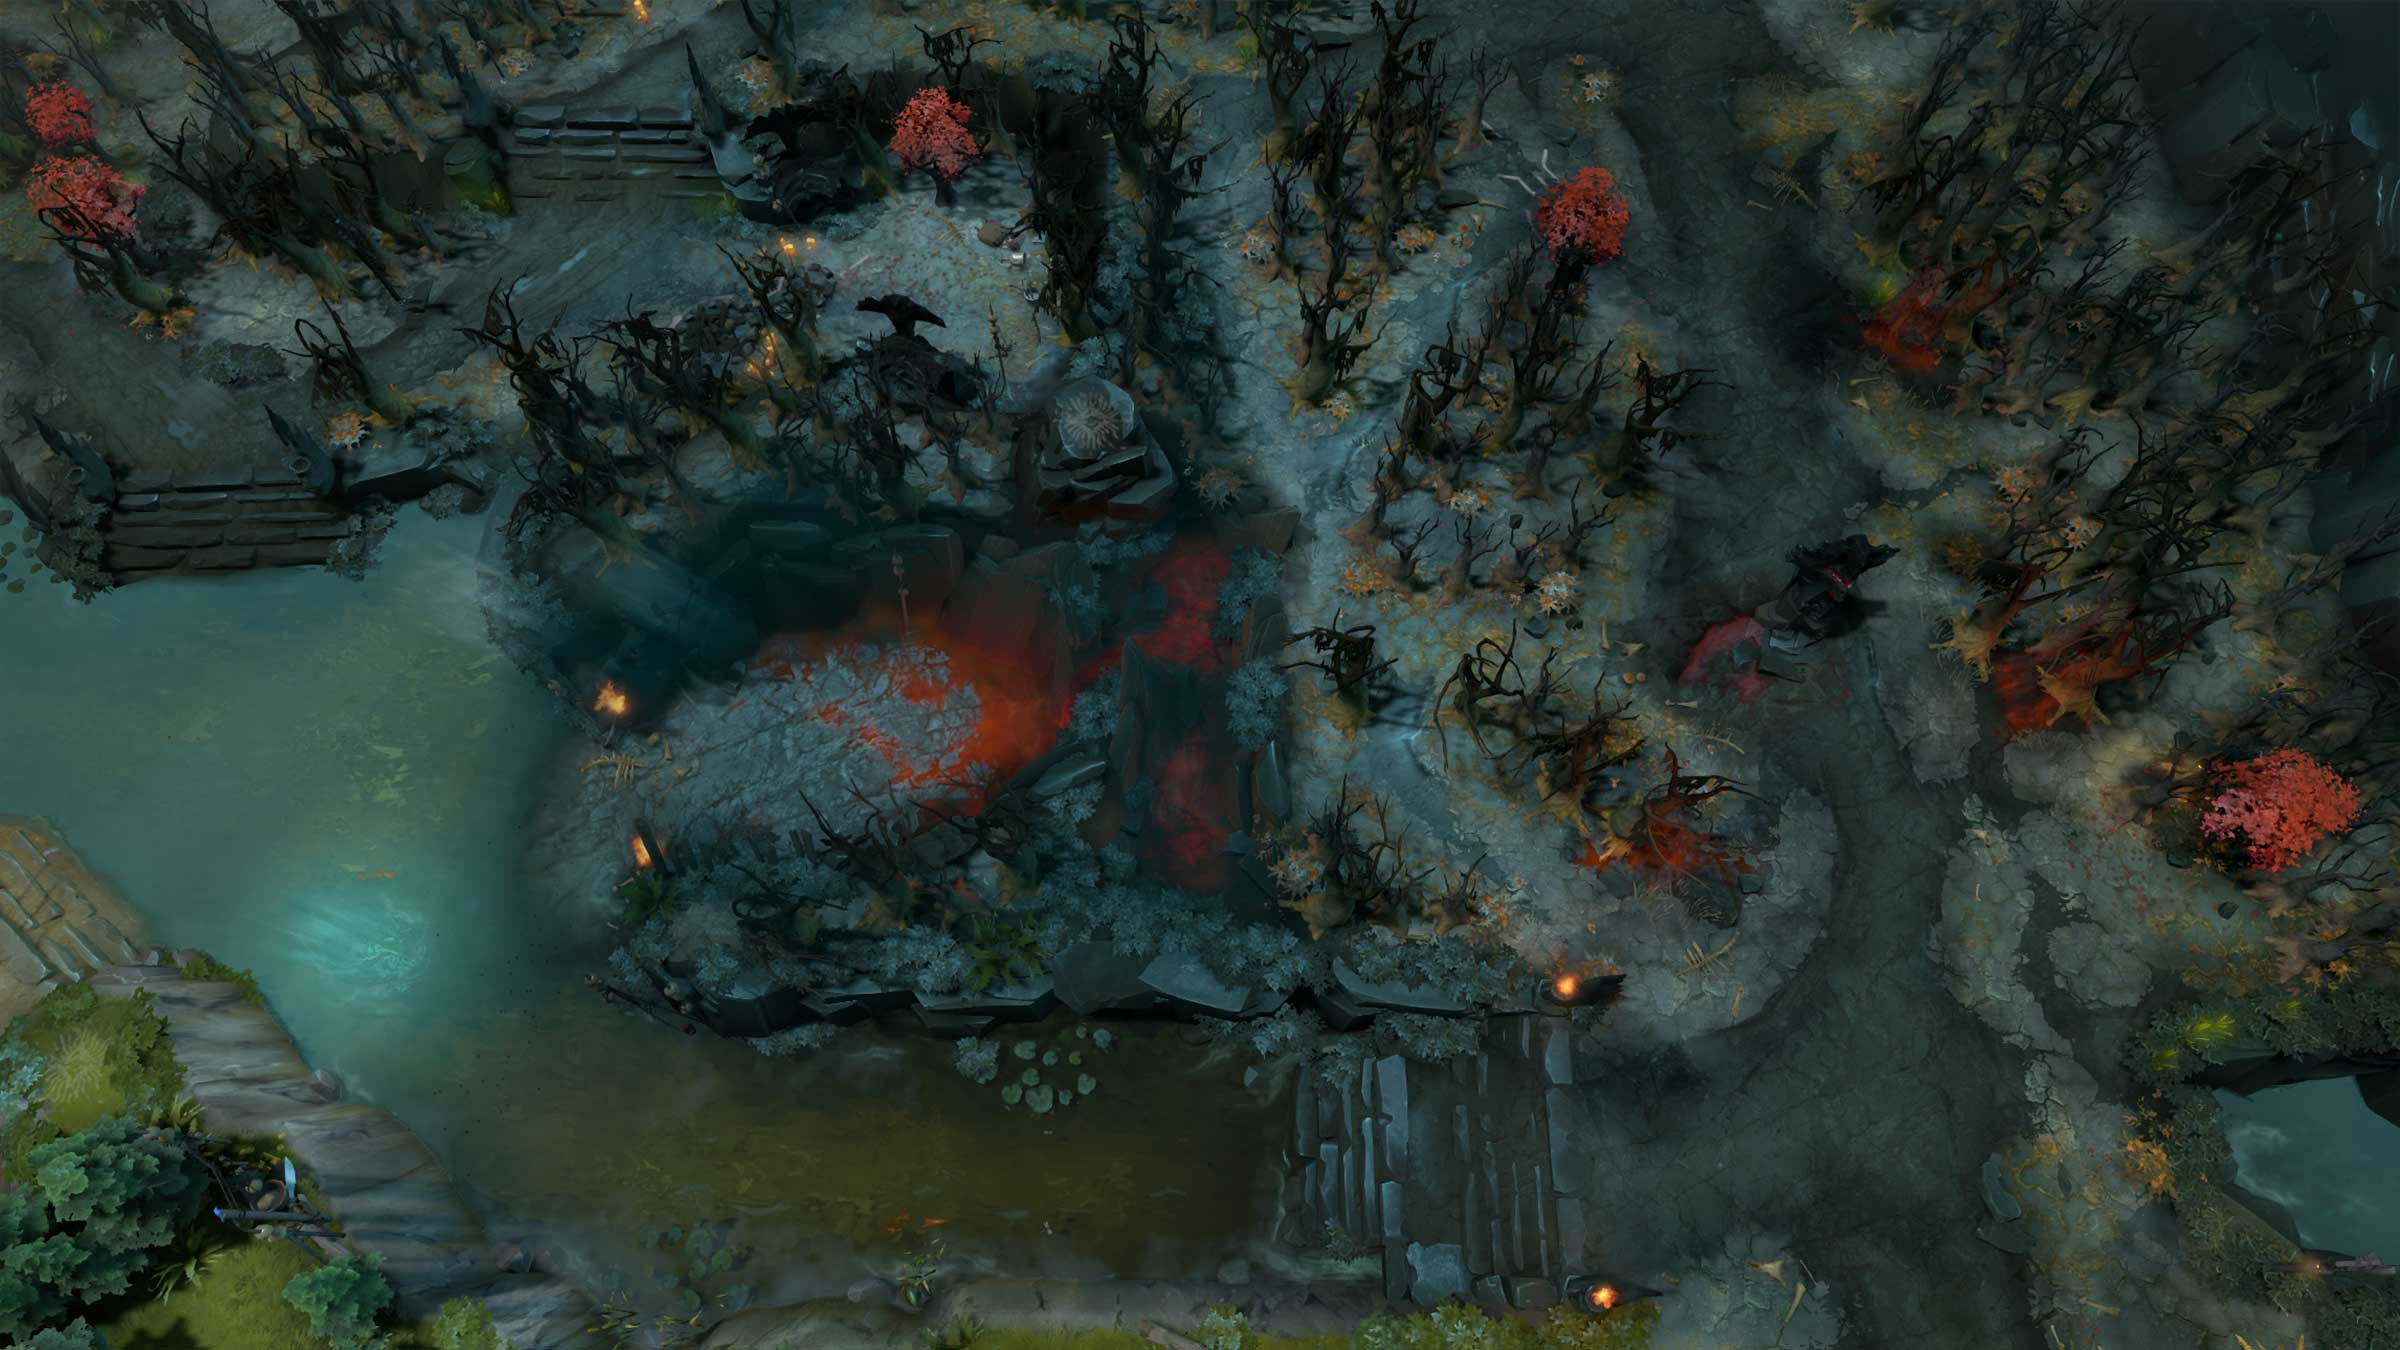 dota 2 matchmaking taking too long Dota 2 gets a lot of press about its eye-popping prize pools, but that's  smash's  story is, the reaction from dota 2 writ large has been a shrug most commenters  have responded with sympathy for smash's plight, but stop short of taking his  side  he's talking games in general, but goes for esports too.